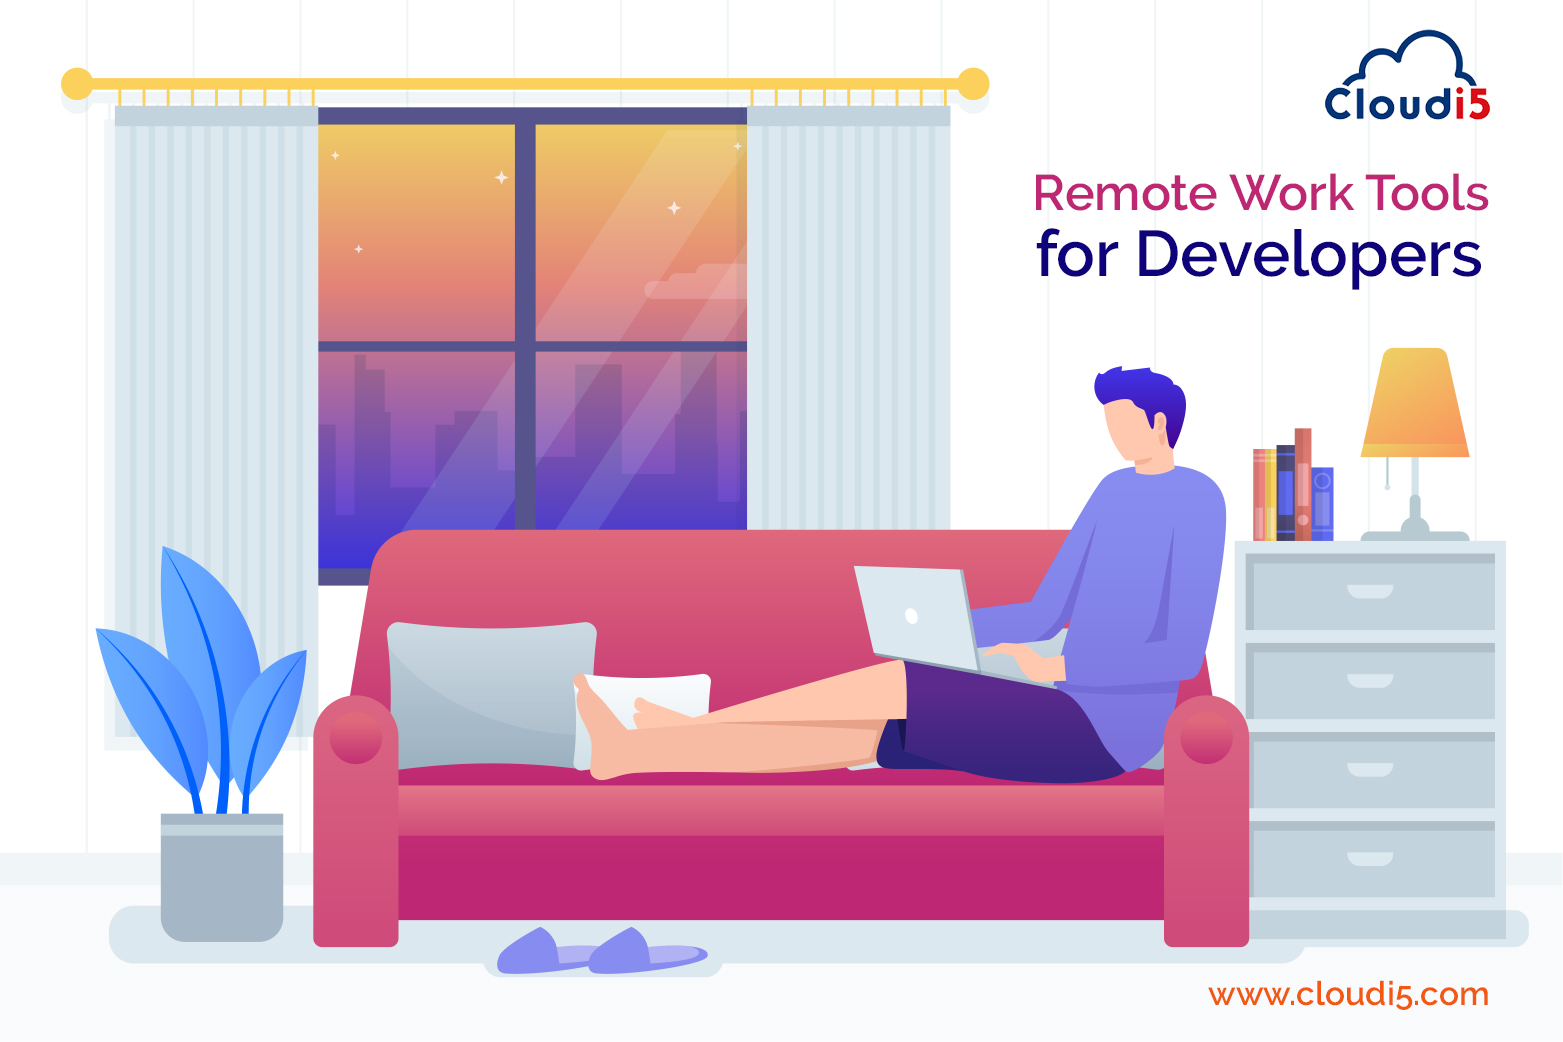 Best Remote Work Tools For Developers To Overcome The Covid Crisis